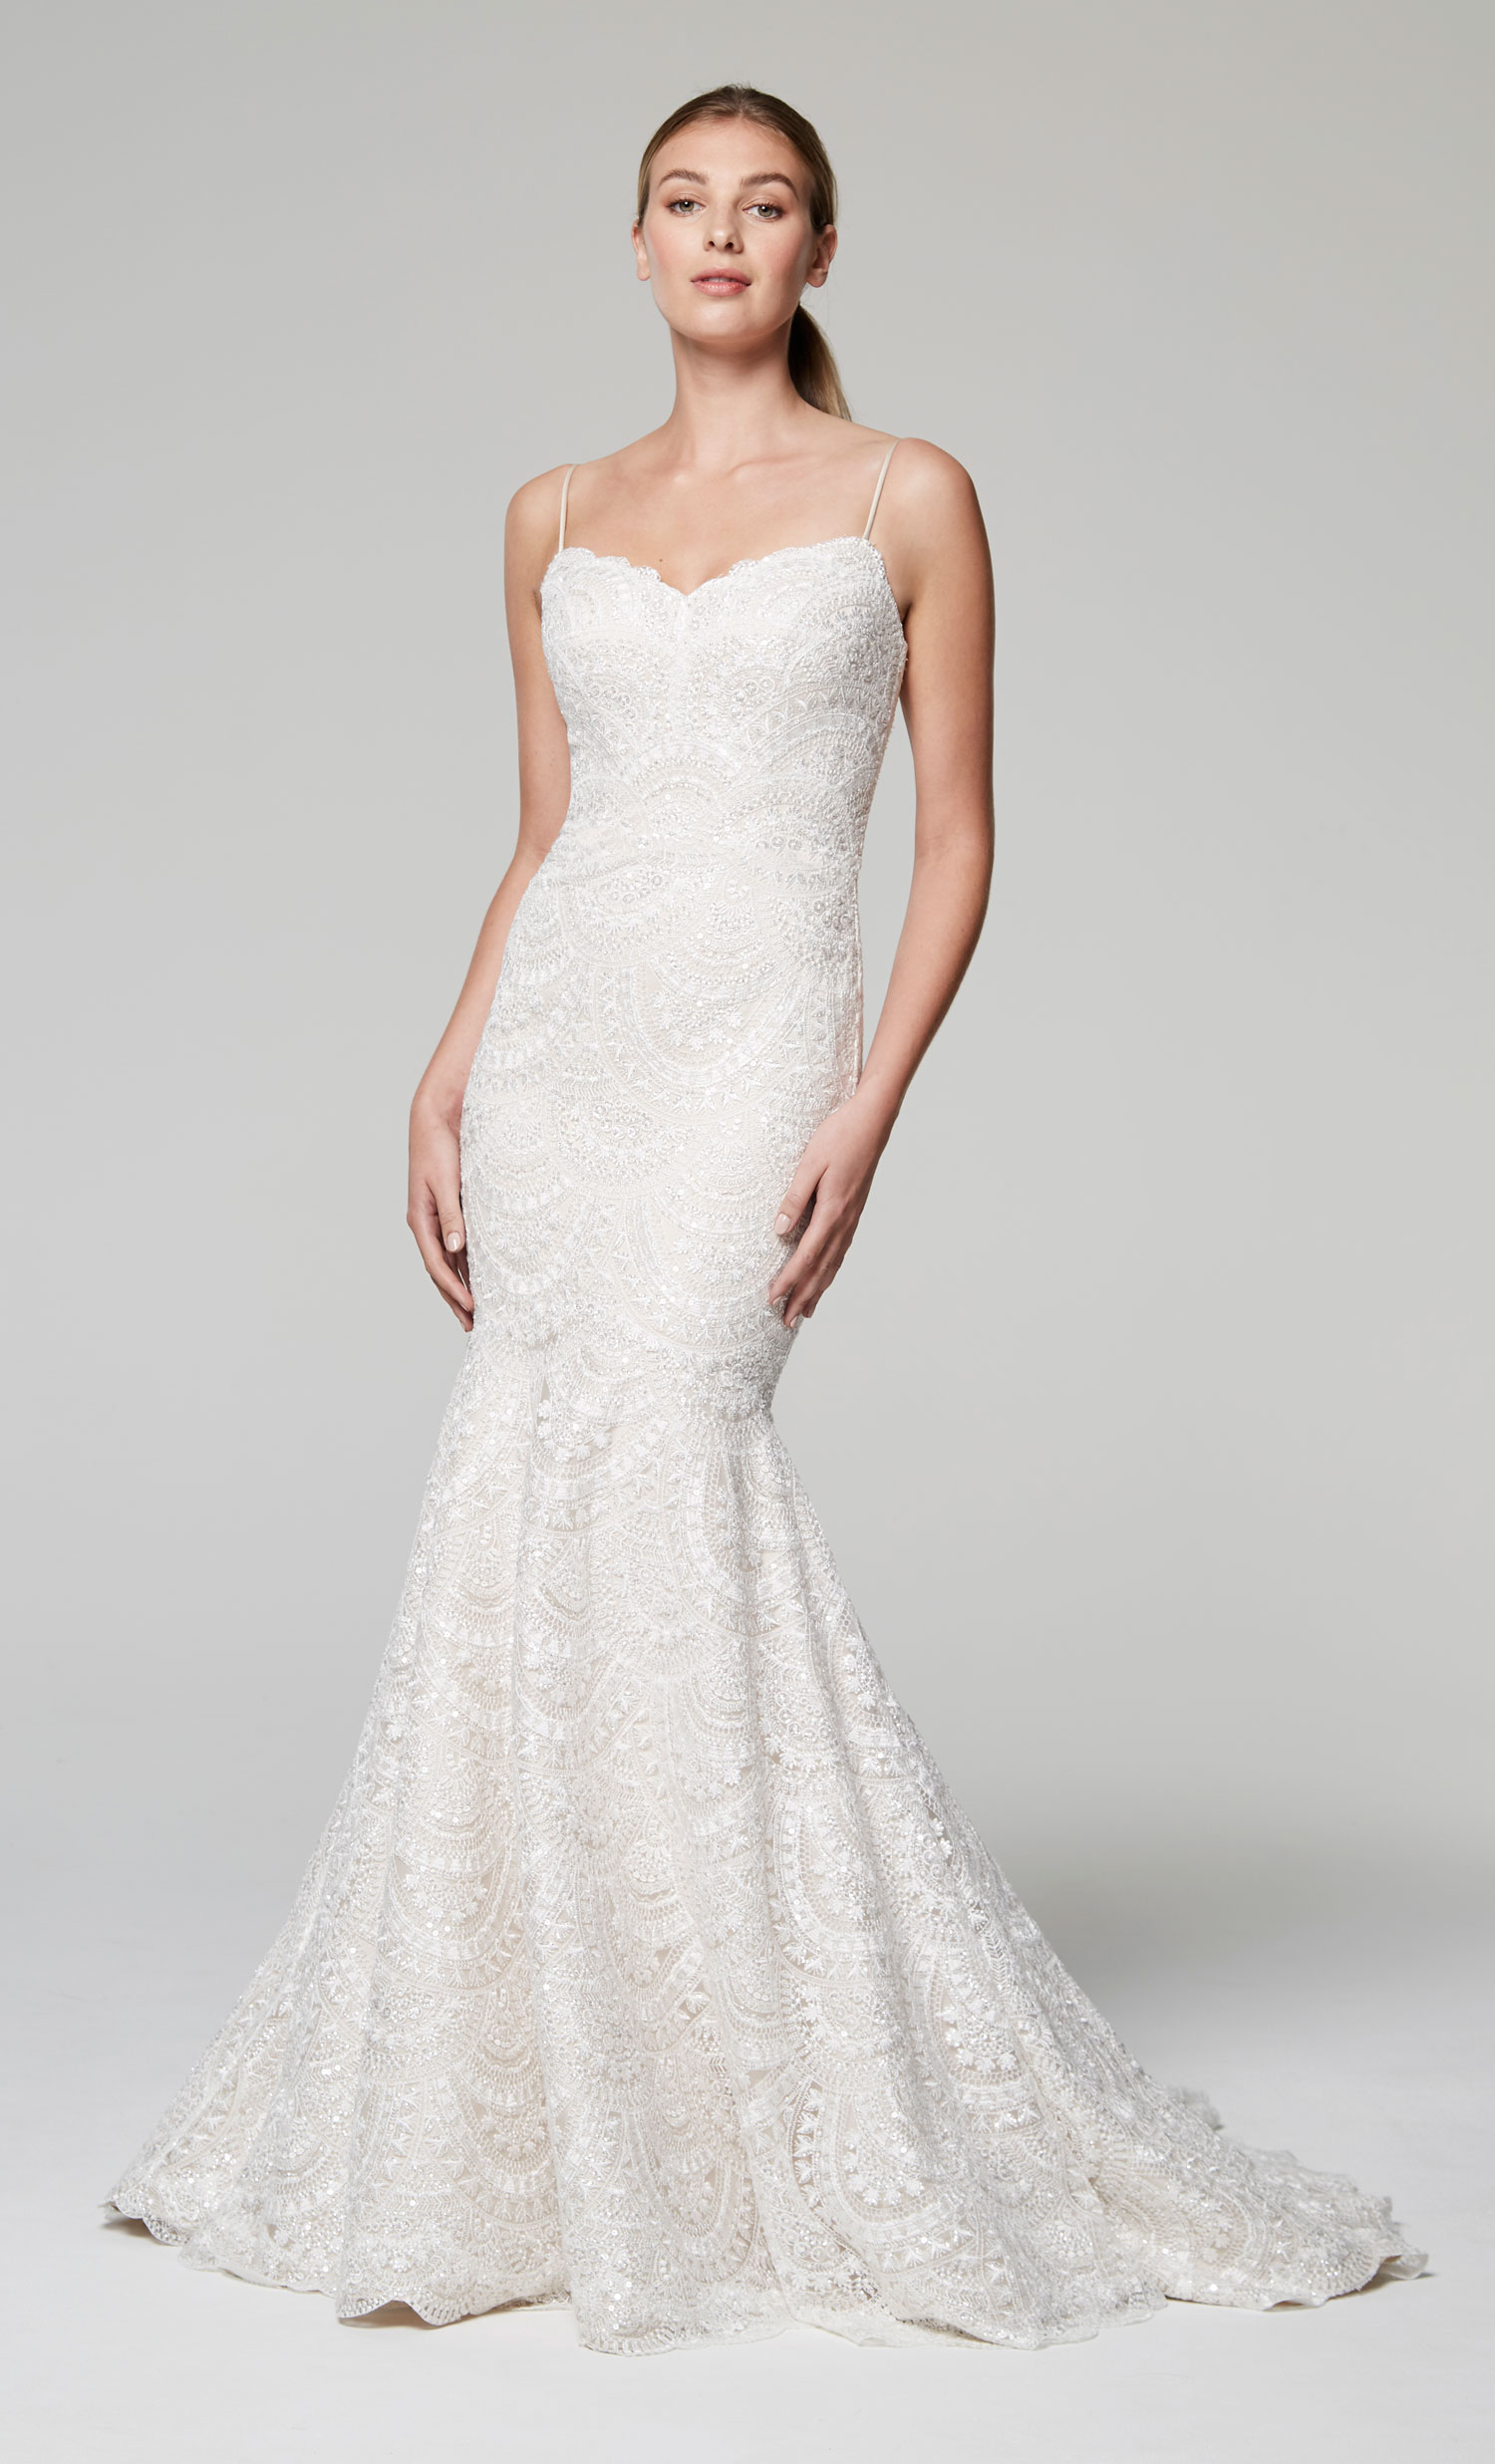 Anne Barge Blue Willow Bride Fall 2018 Zurie - Inside Weddings